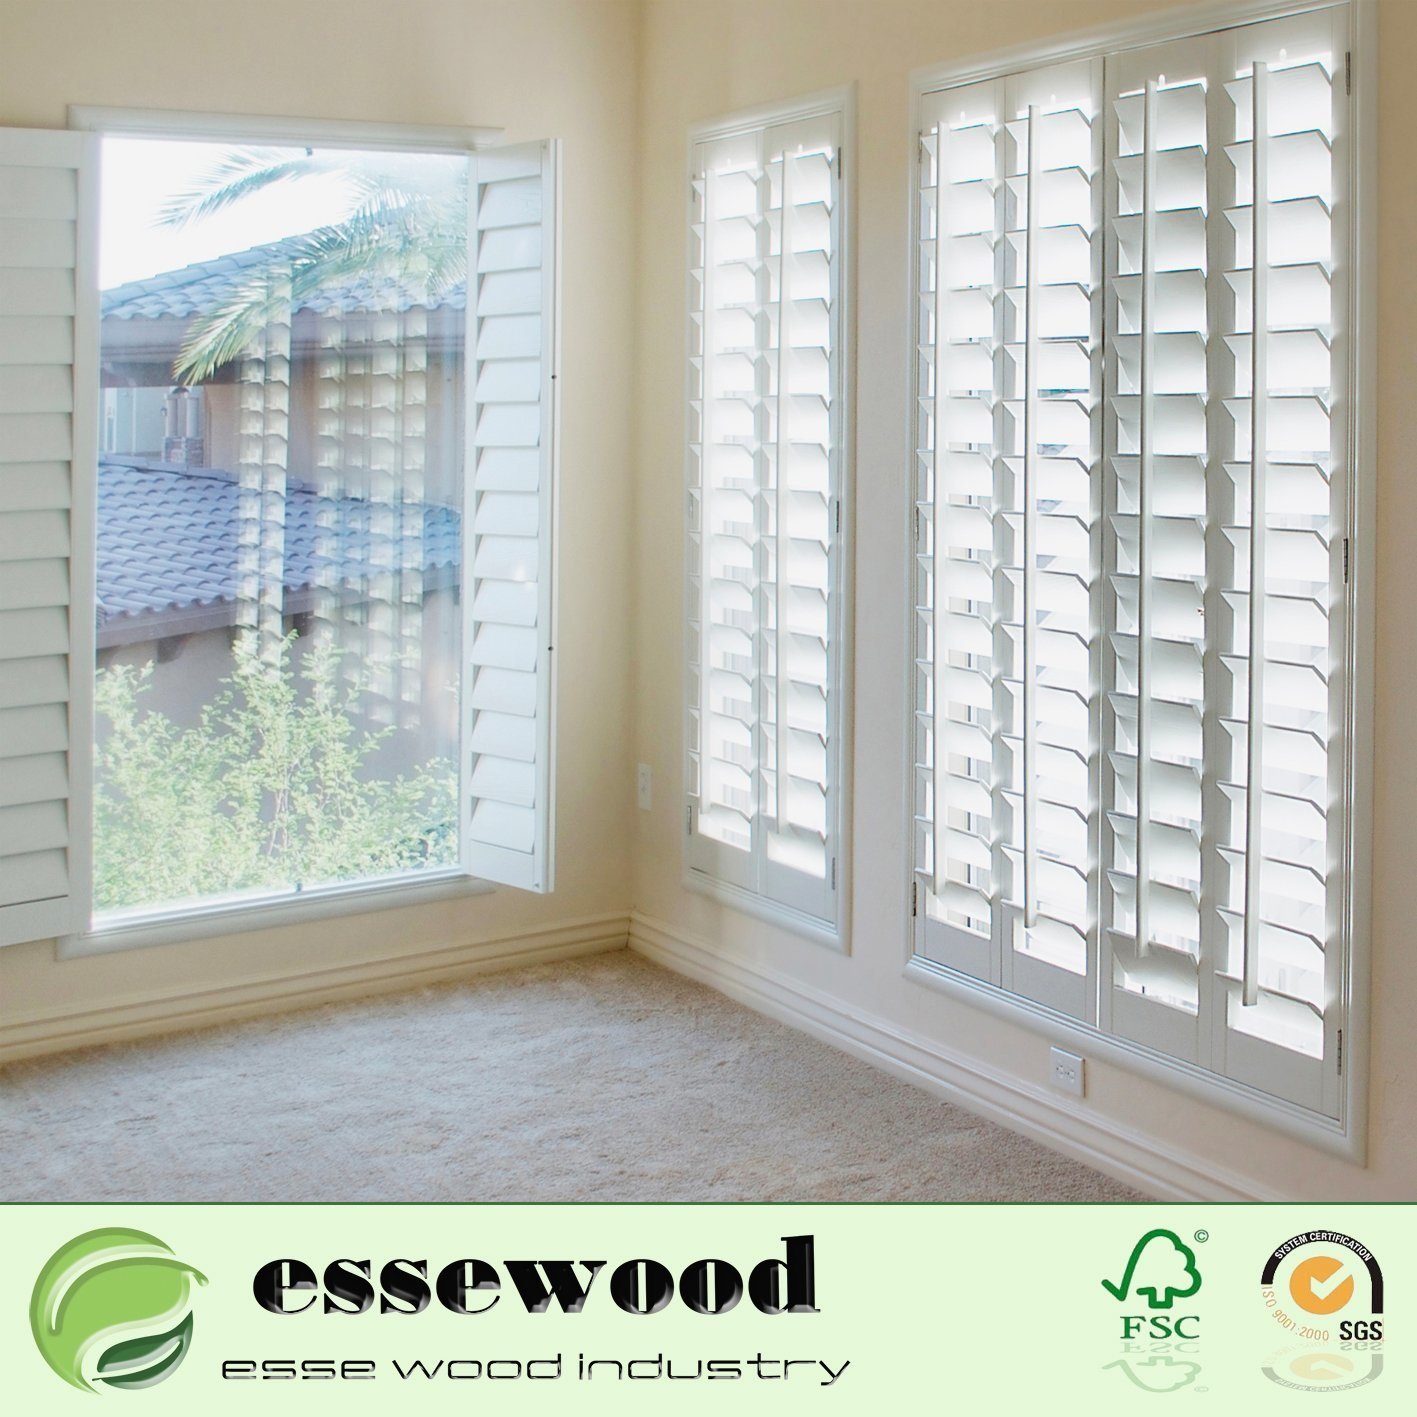 Hot Item Interior Louvered Shutter Window Plantation Louvered Jalousie Vinyl Shutters